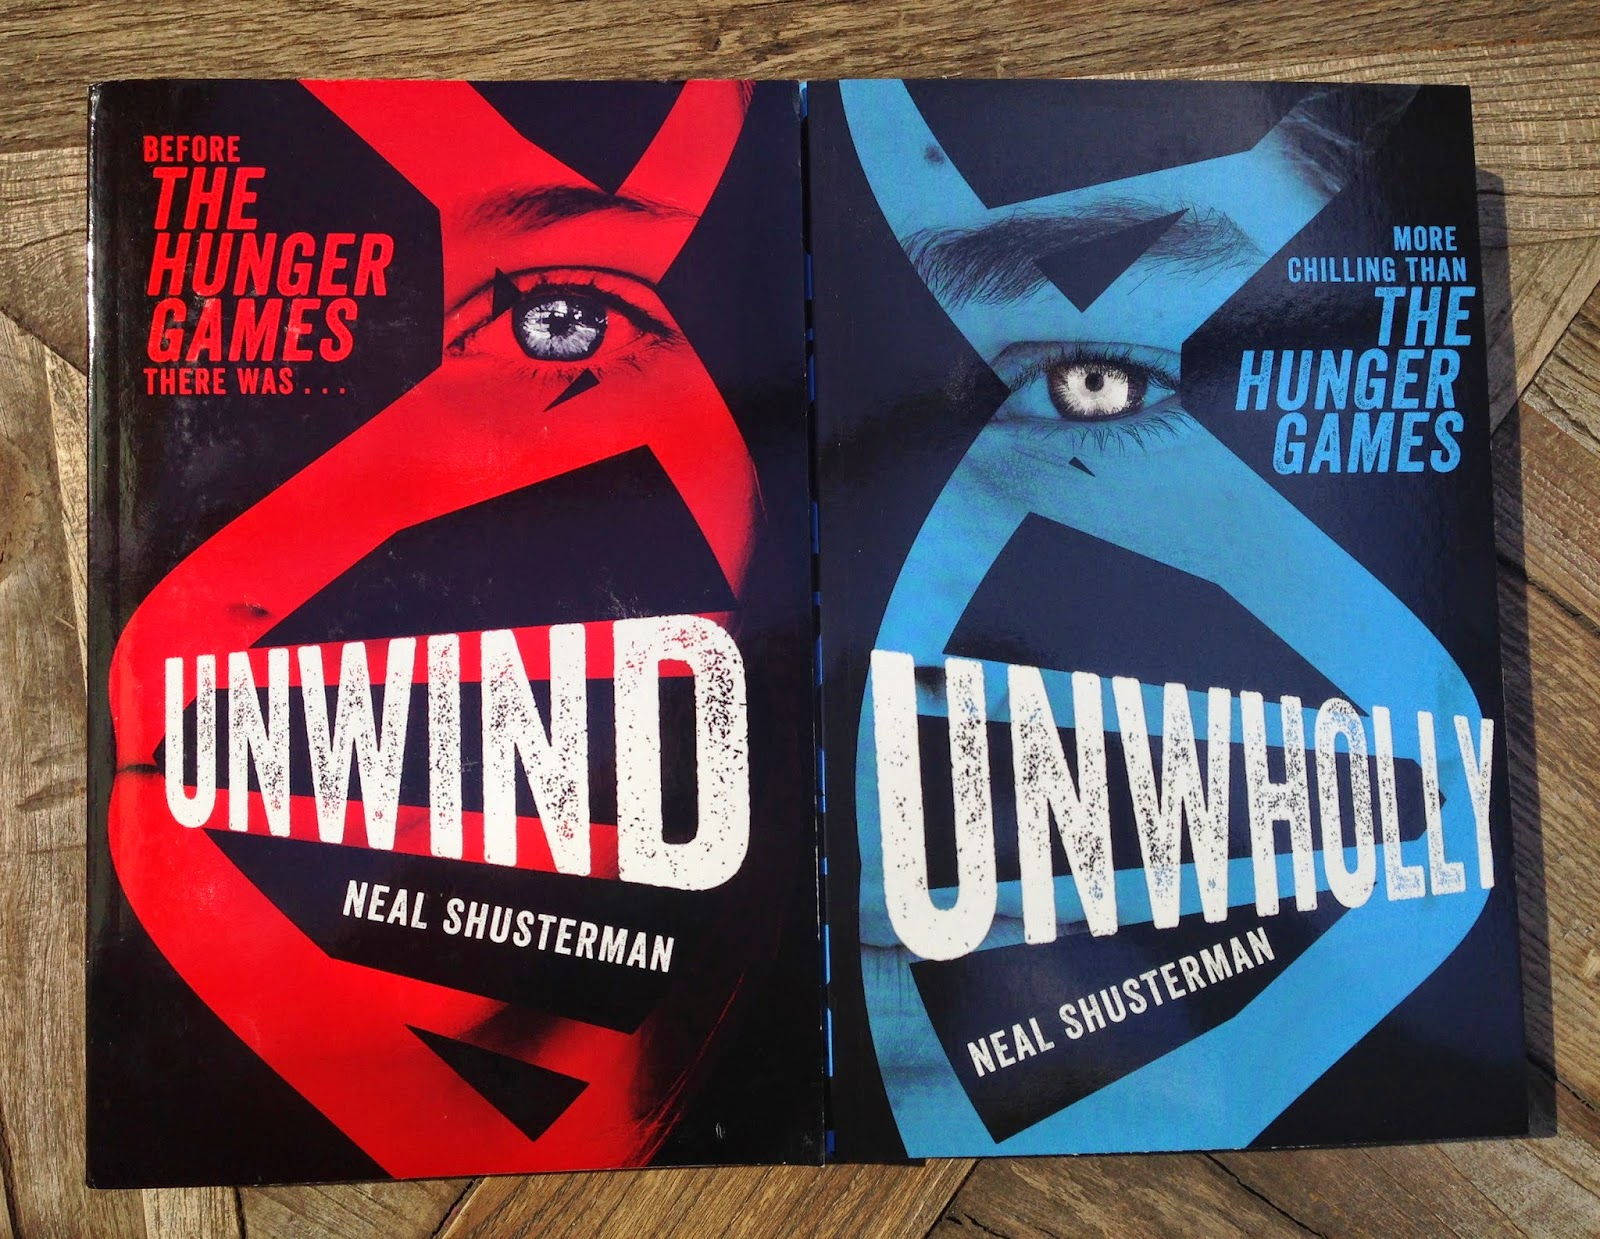 The Second Two Books I Picked Up Are Unwind And Unwholly By Neal  Shusterman Like Nearly Every Other Ya Dystopian Book Today, The Cover  Brings Up